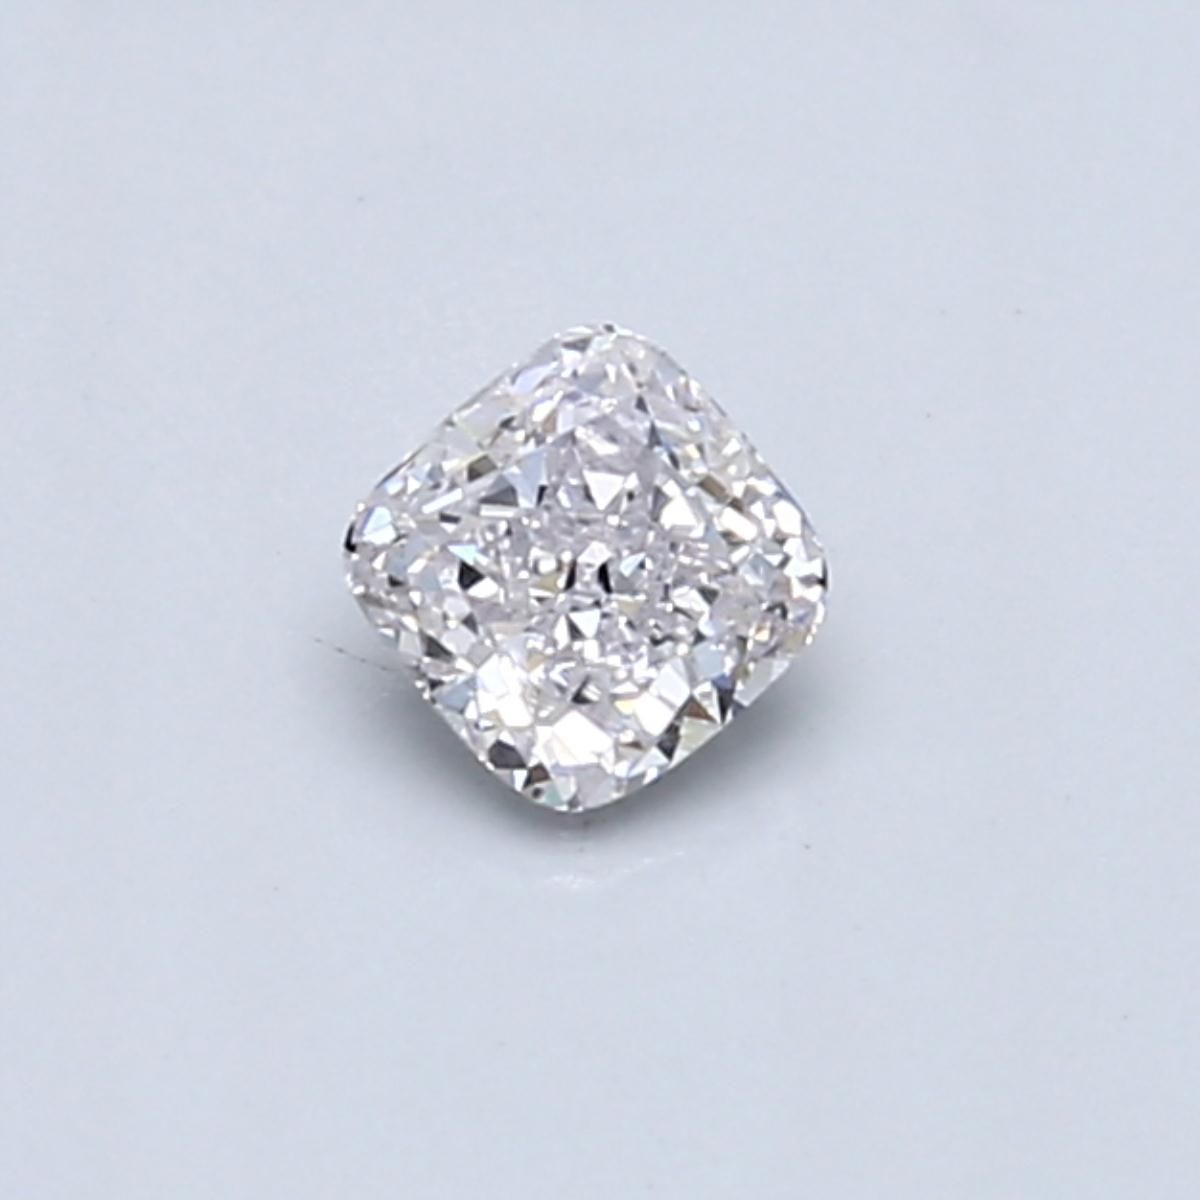 diamonds is in deep shallow properly or imbalance it without cut the credit when any proportion cashing if how going will right com diamond a light to buy stone jewellery reflect